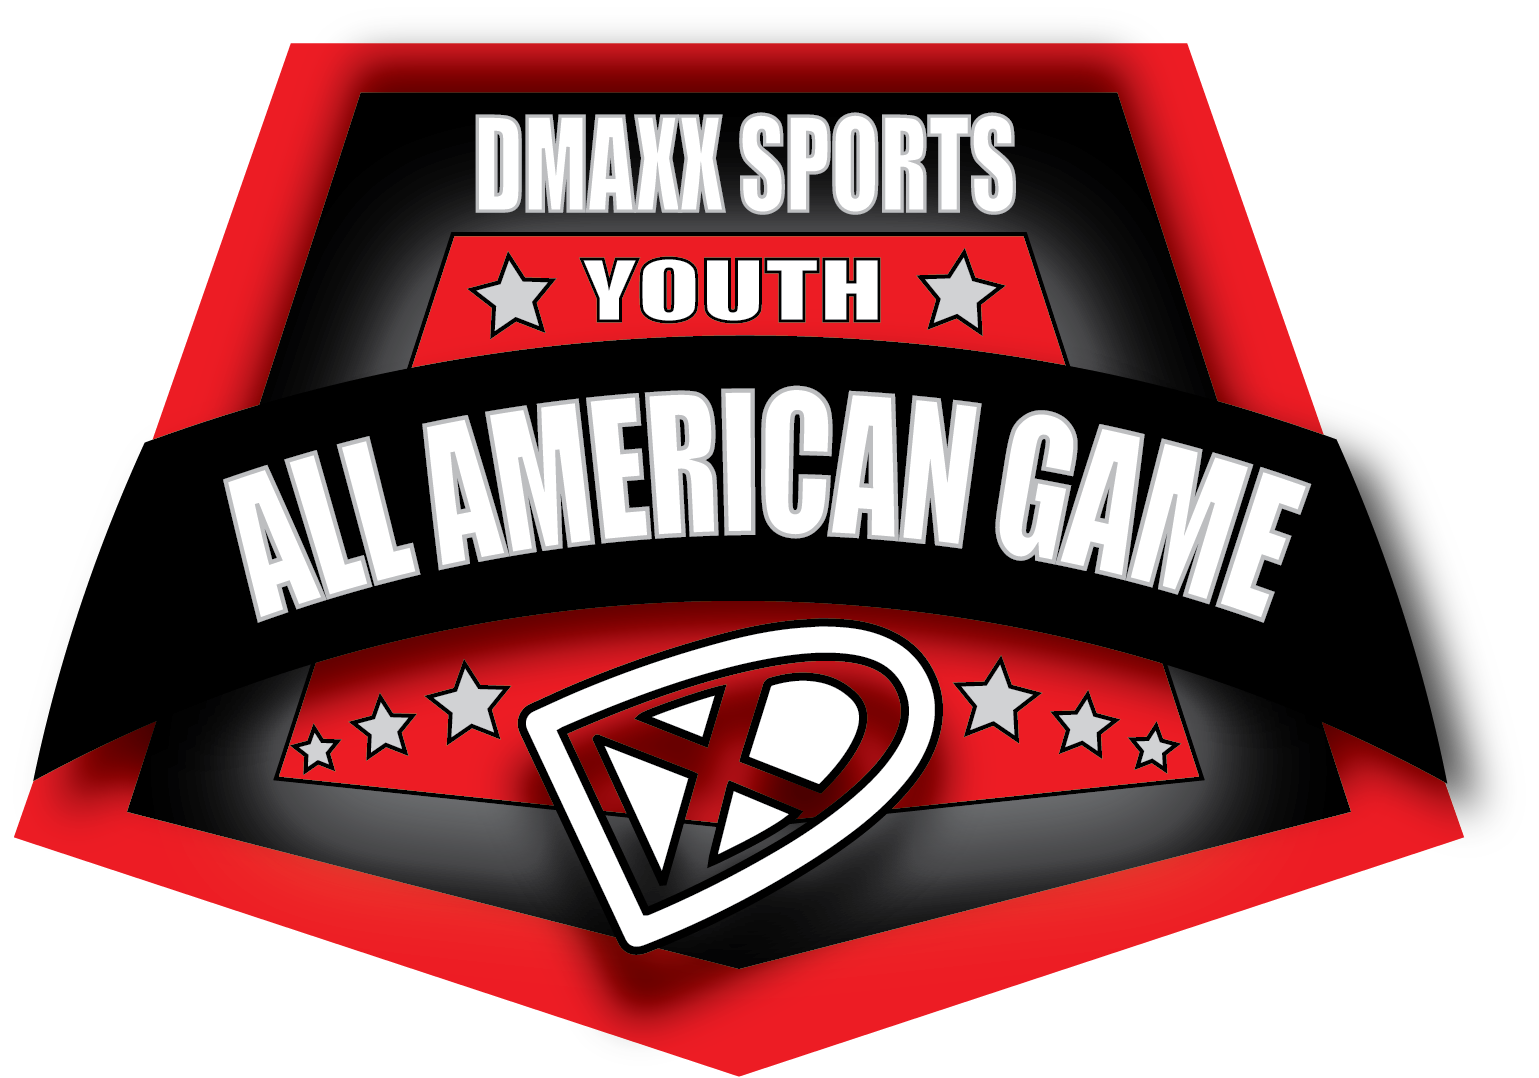 dmaxx-all-american-game2.png